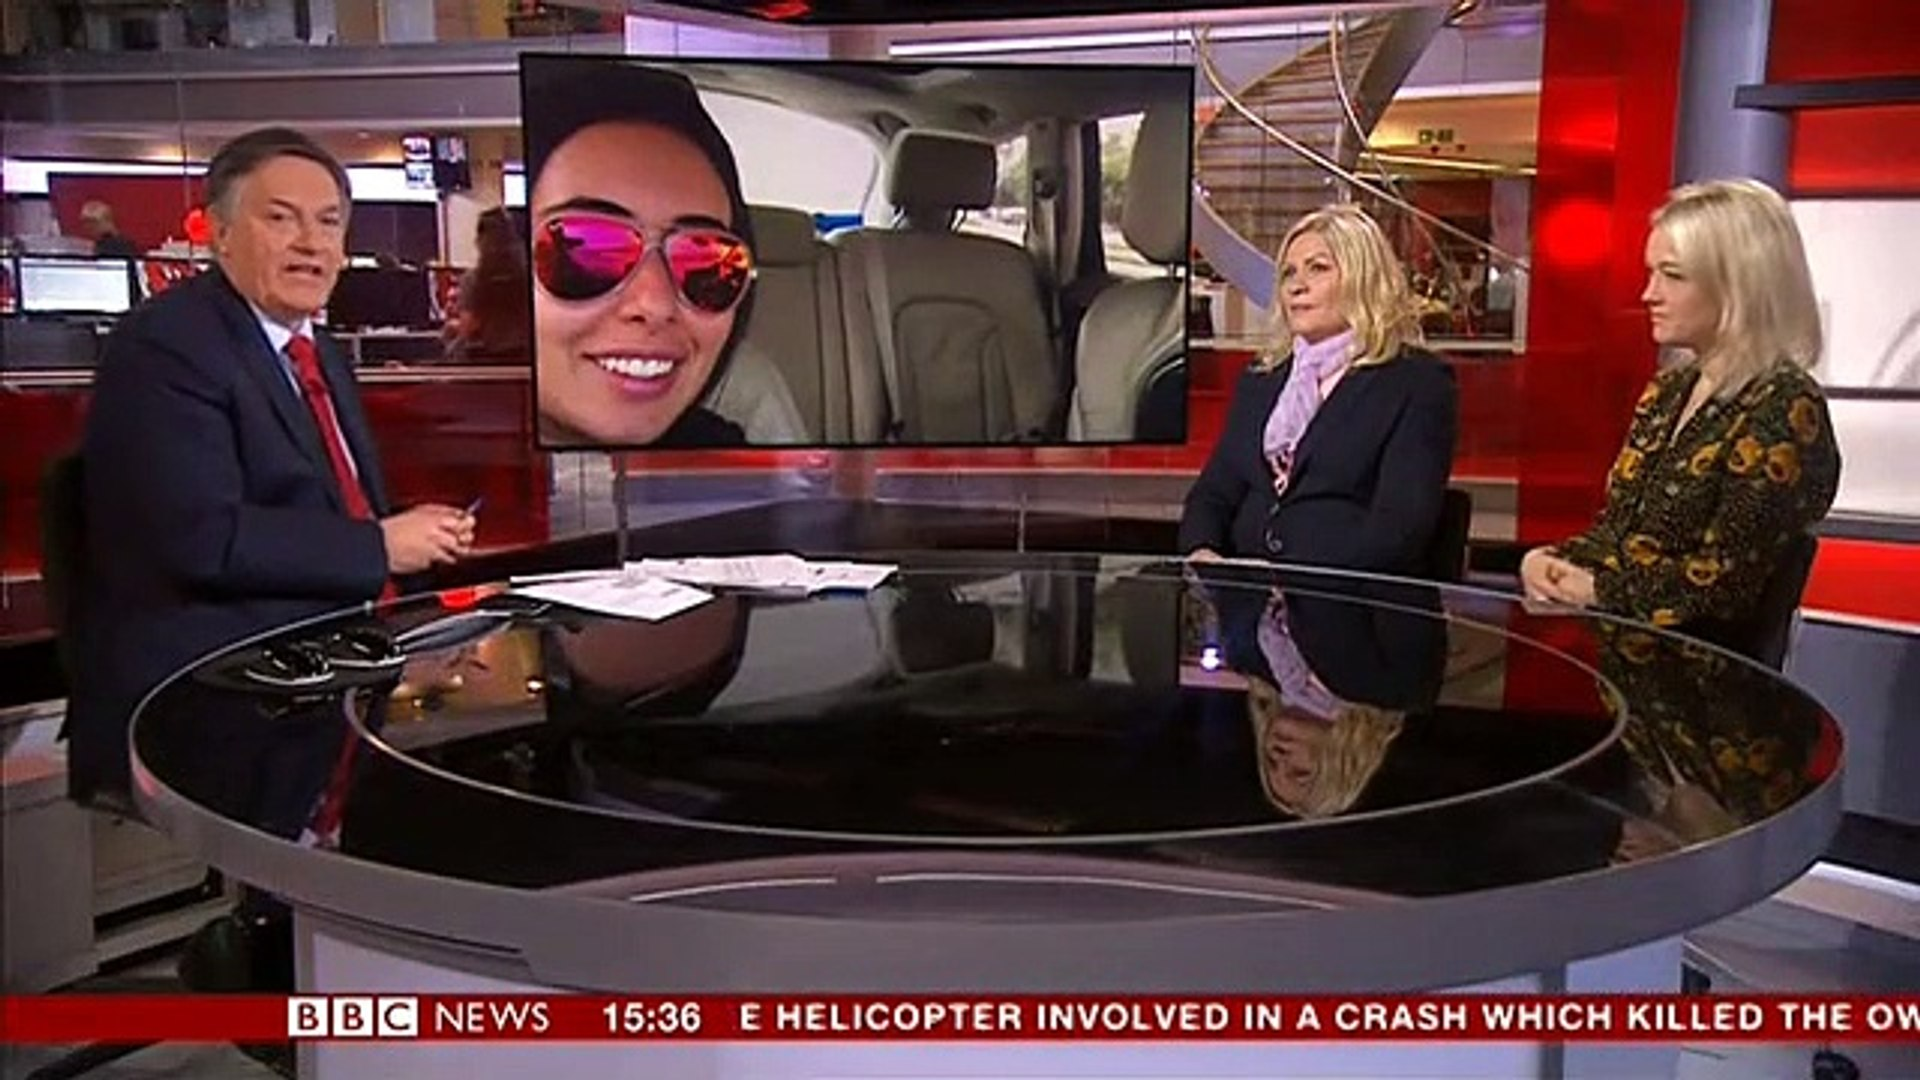 Afternoon Live (BBC News): Interview with Tiina Jauhiainen and Jane McMullen on